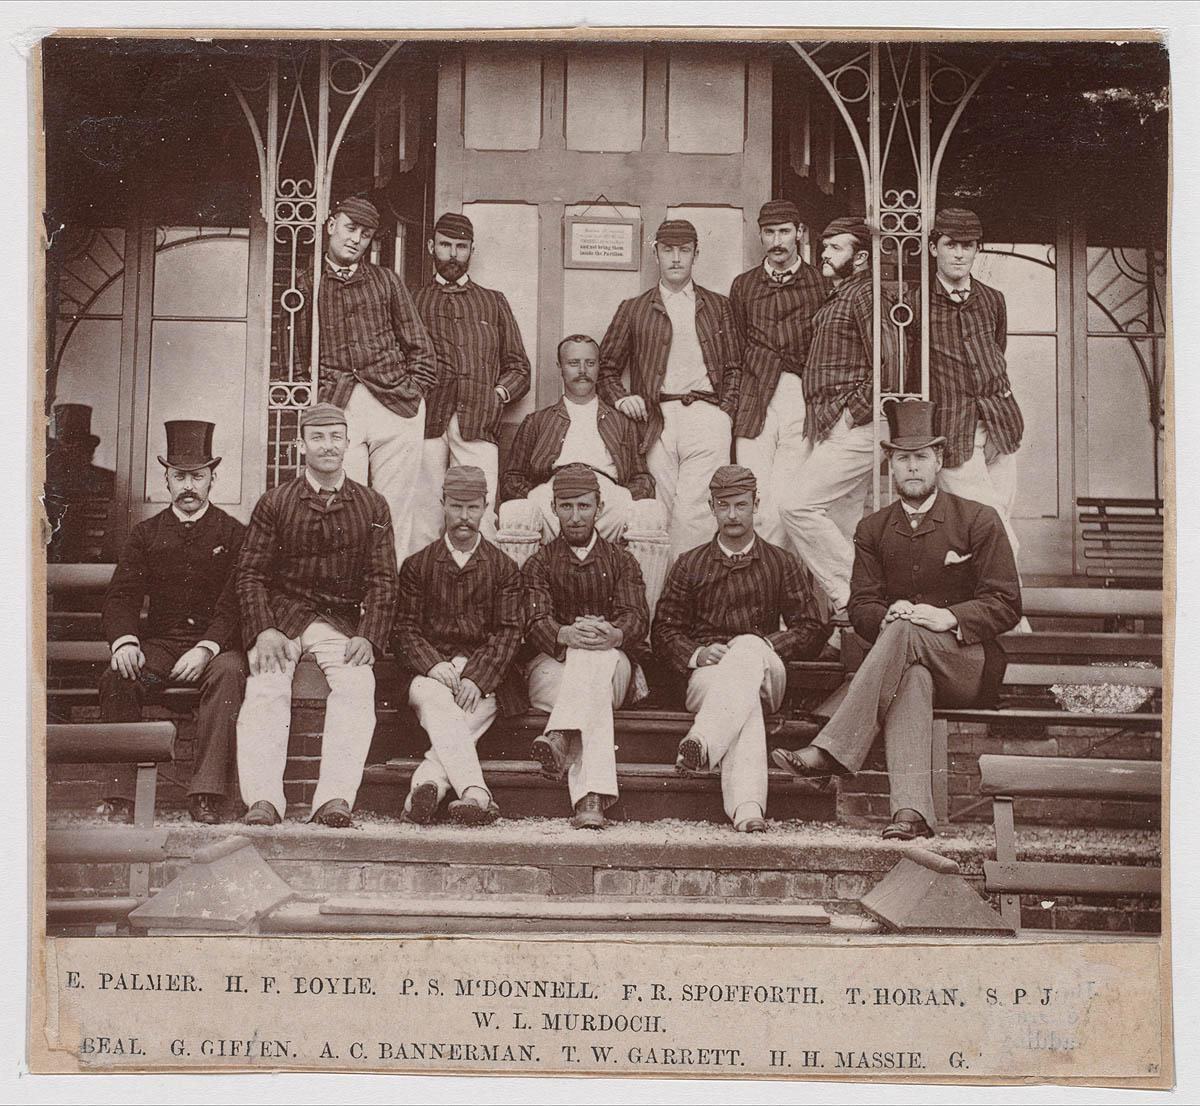 a history of cricket Village cricket had developed by the middle of the 17th century and the first english county teams were formed in the second half of the century, as local experts from village cricket were employed as the earliest professionals.